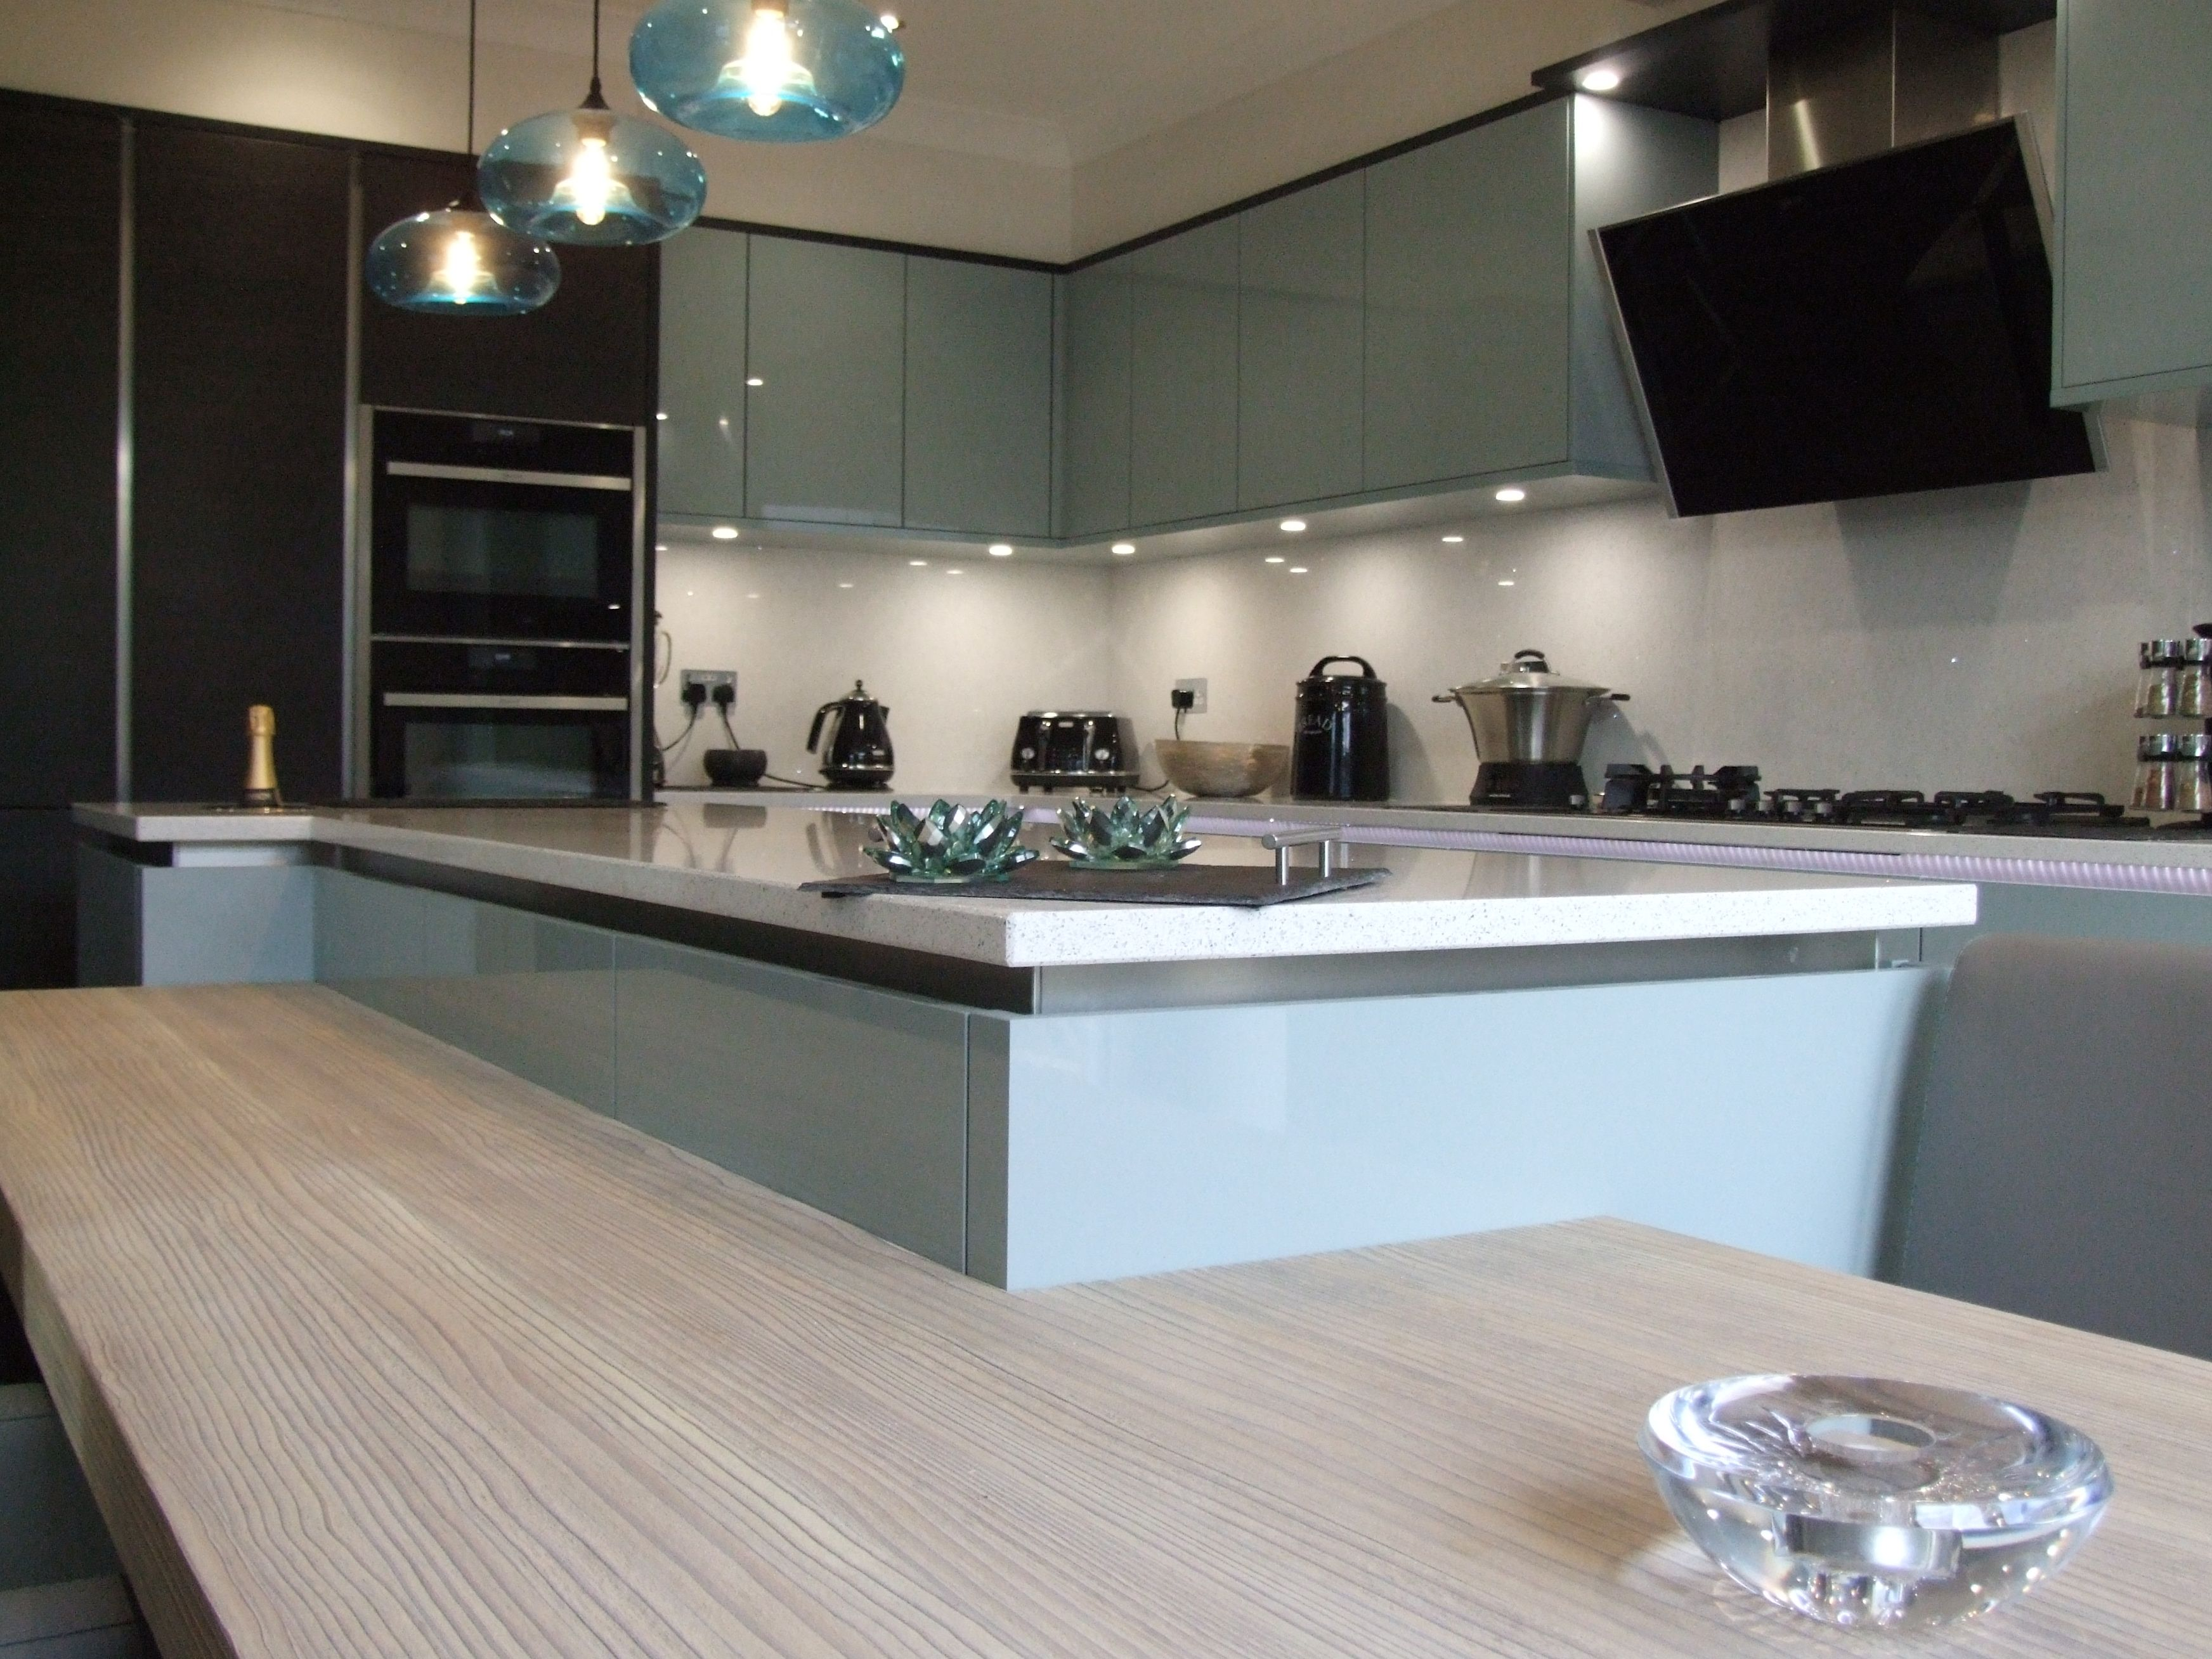 Stunning Kitchen Design And Installation With Light Blue Cabinetry Enchanting Kitchen Design And Installation Inspiration Design